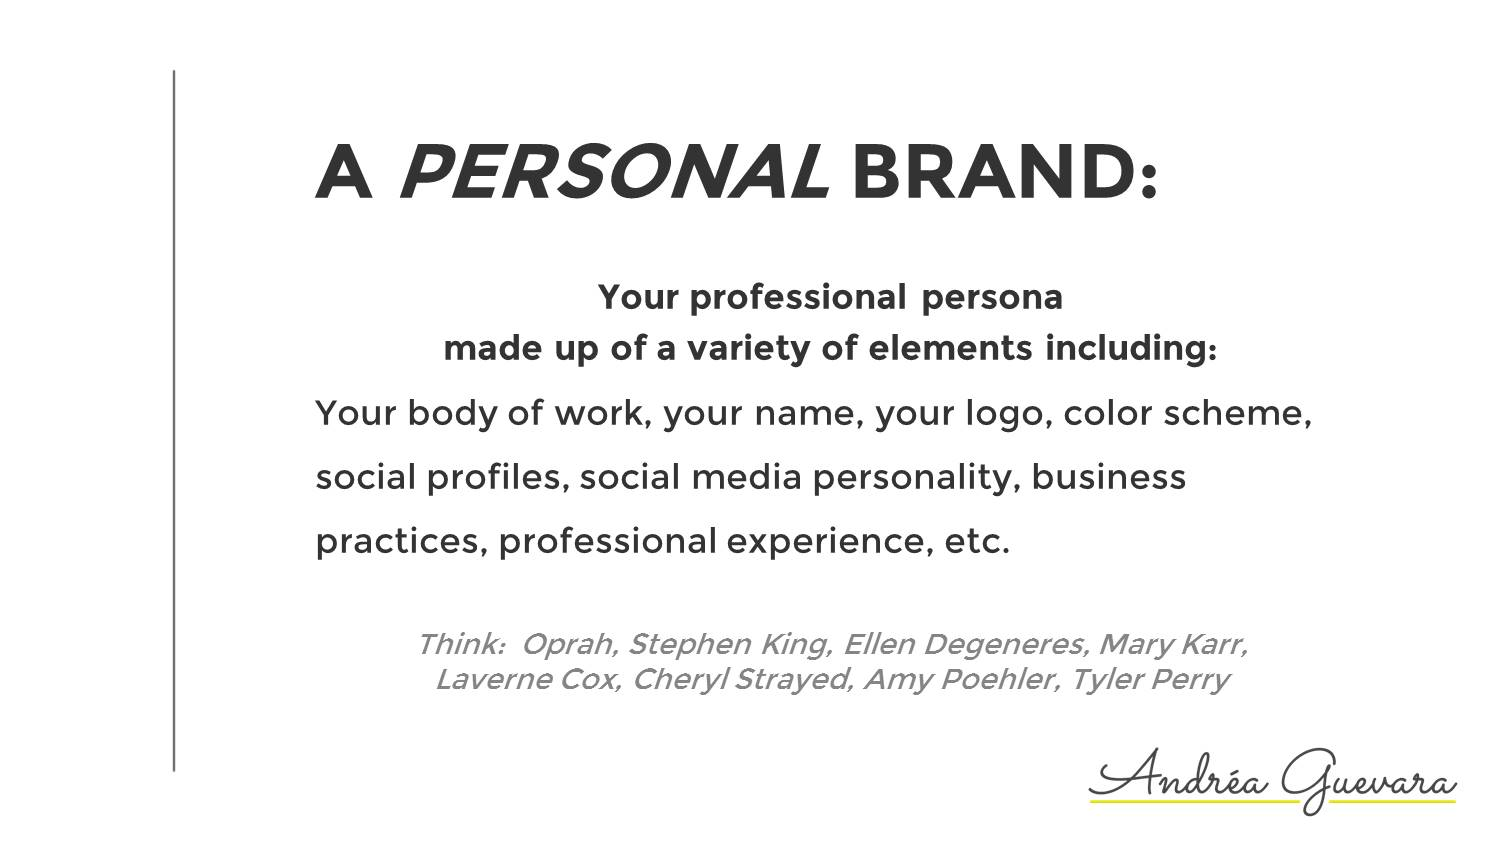 Personal Brand definition: Your professional persona made up of a variety of elements.